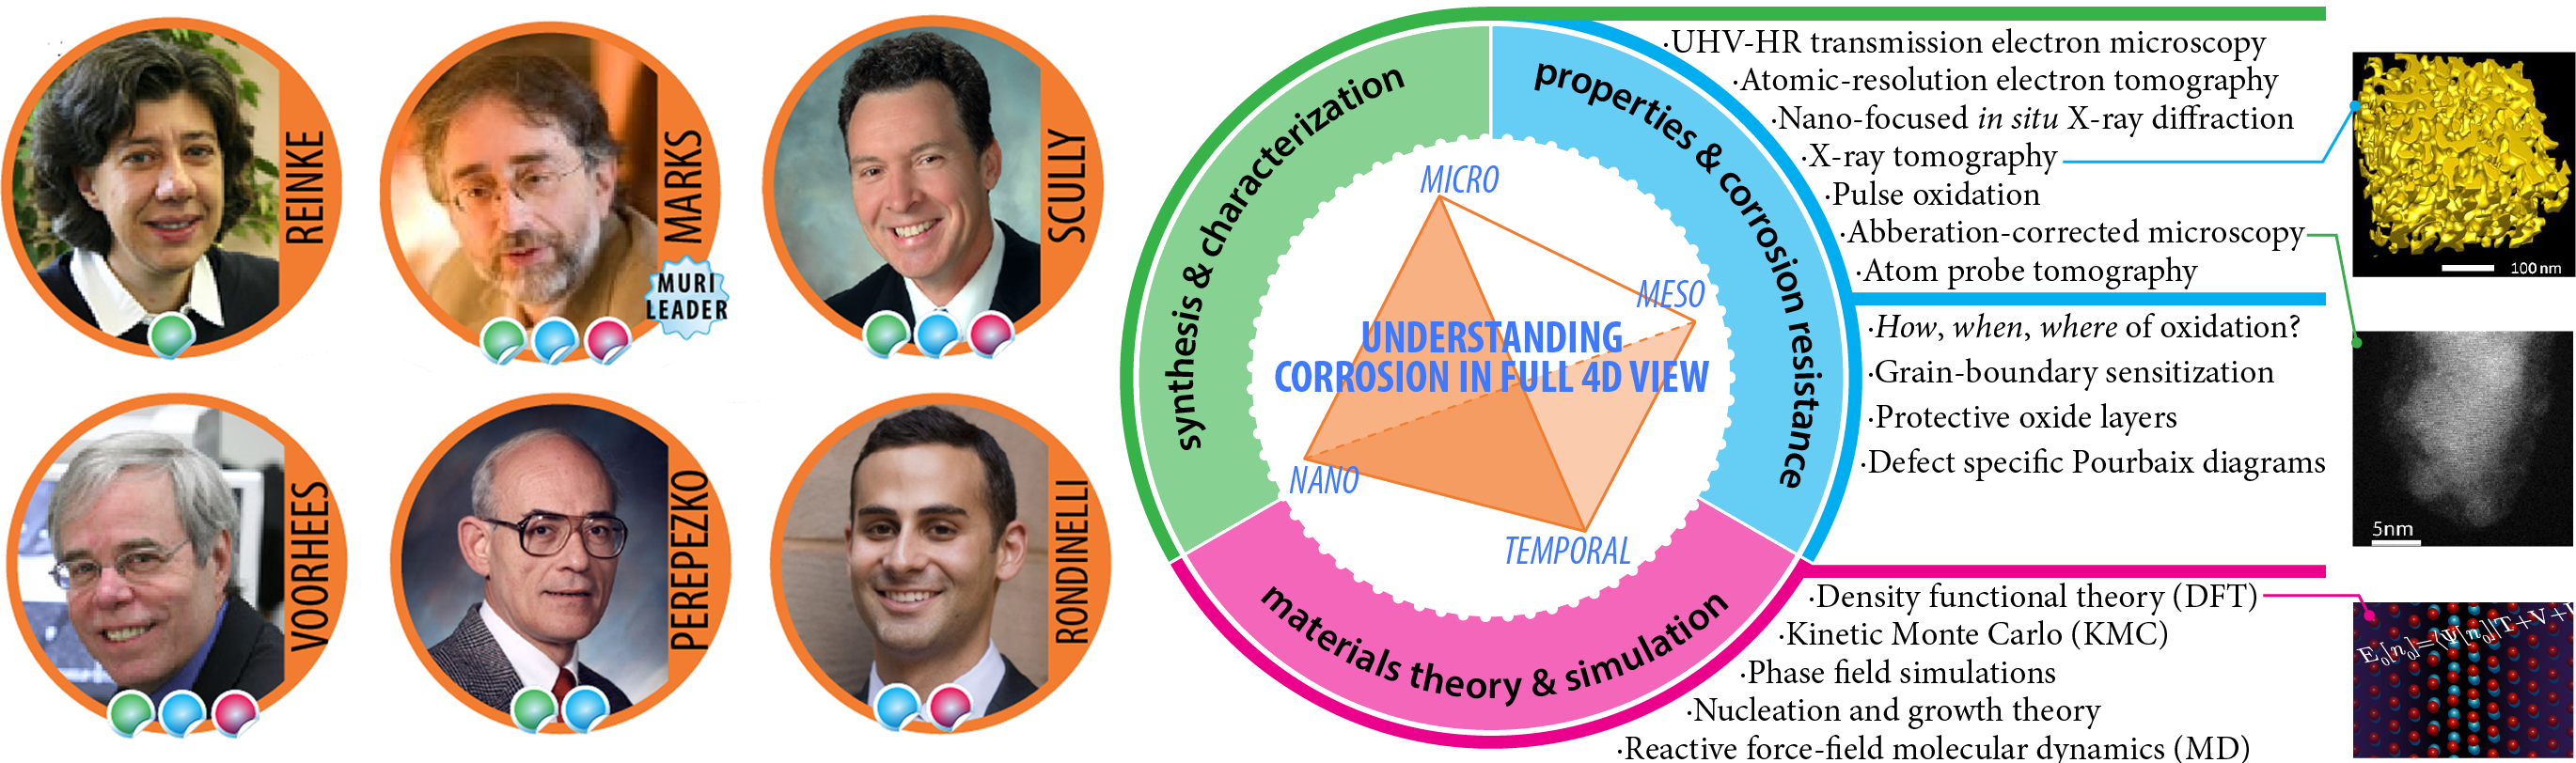 Left: Headshots of faculty team leaders. Right: Schematic showing three areas of focus for studying corrosion in 4D: Synthesis $amp; characterization, properties & corrosion resistance, materials theory & simulation